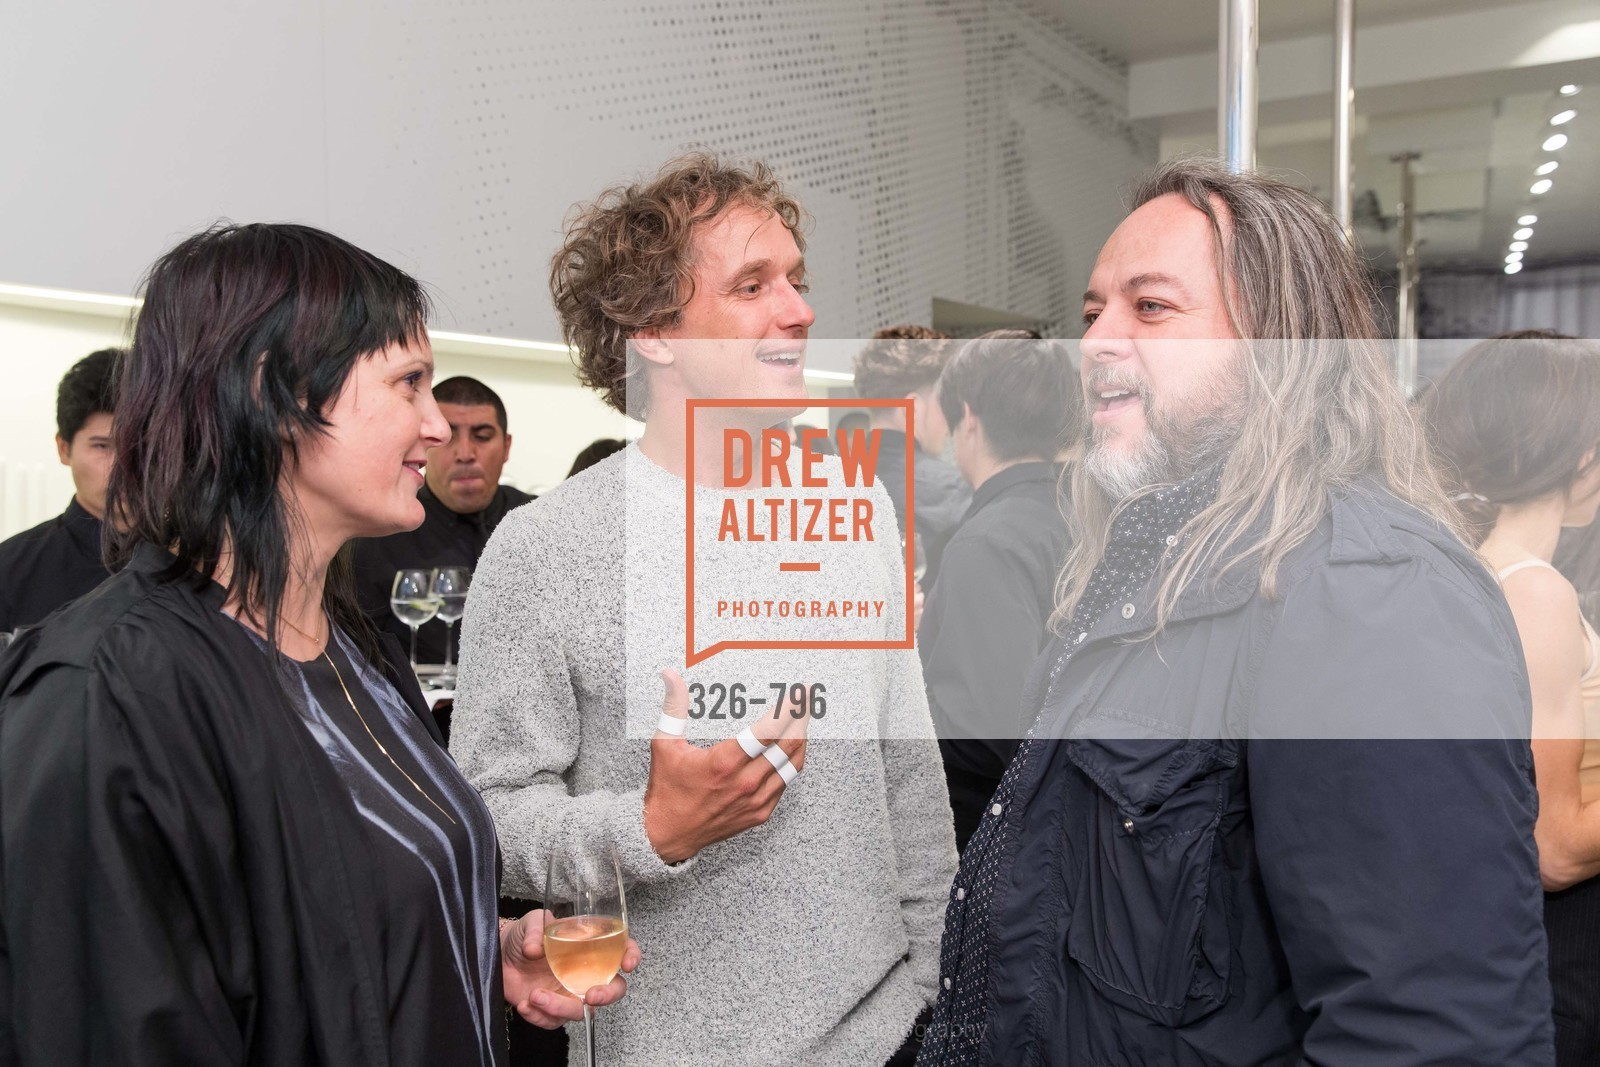 Yves Behar, Rich Hansen, MAISON MARGIELA San Francisco Boutique Grand Opening Event, US, April 23rd, 2015,Drew Altizer, Drew Altizer Photography, full-service agency, private events, San Francisco photographer, photographer california